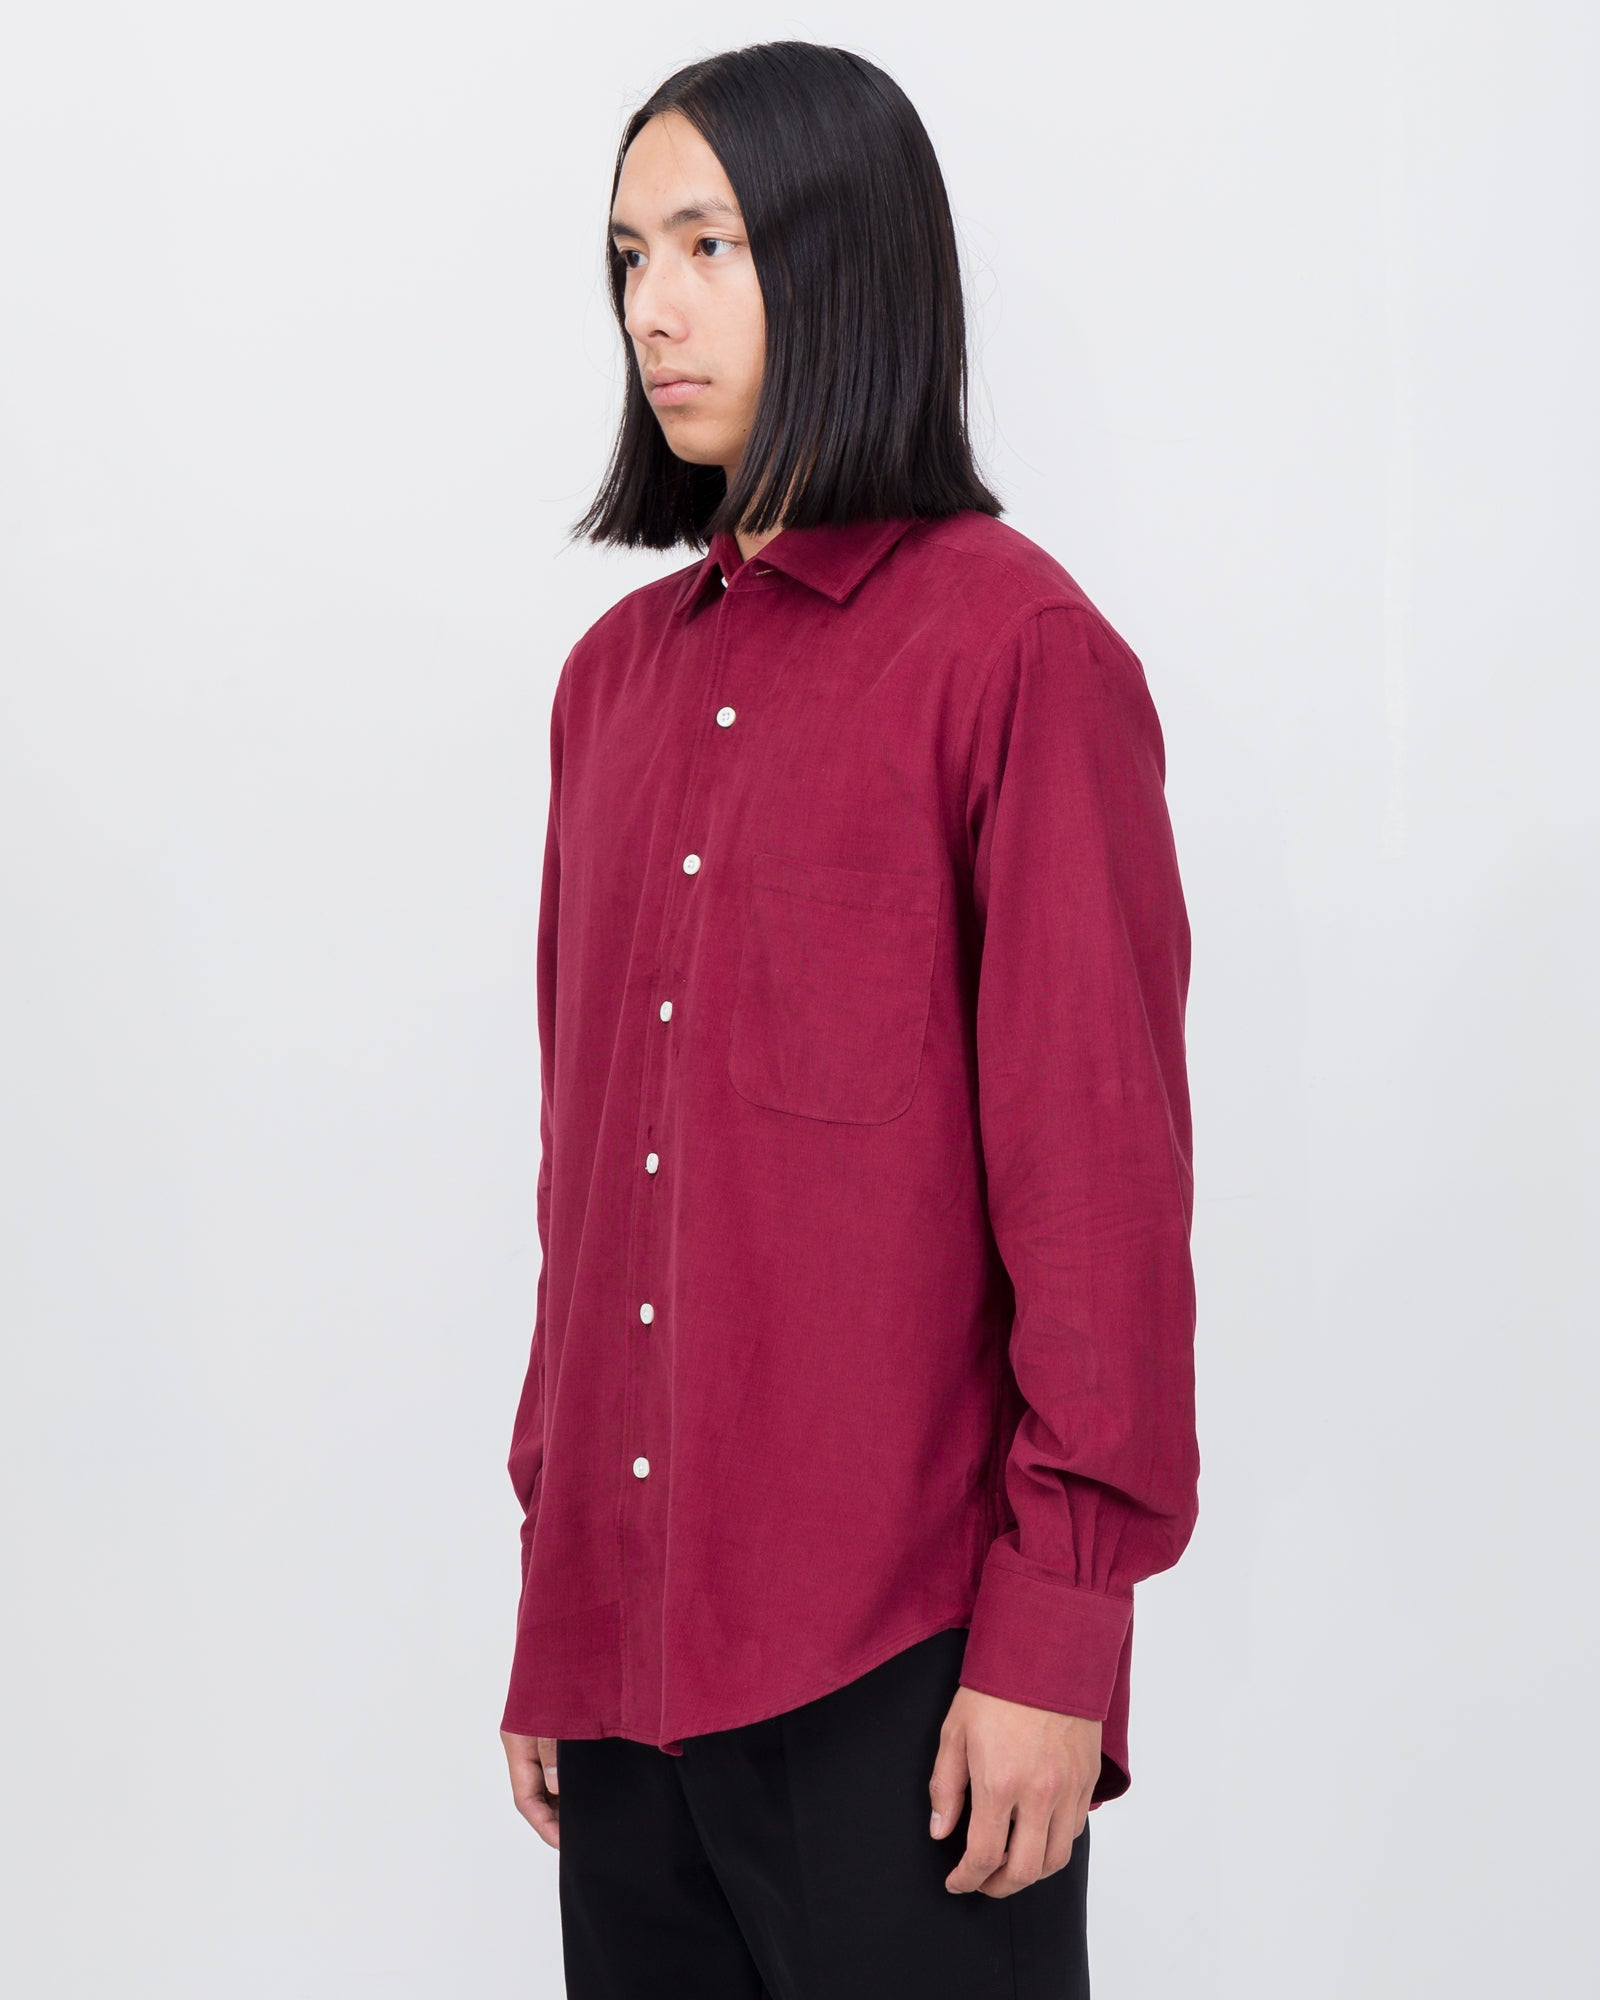 Replica Shirt in Crimson Micro Cord | Cobra S.C.